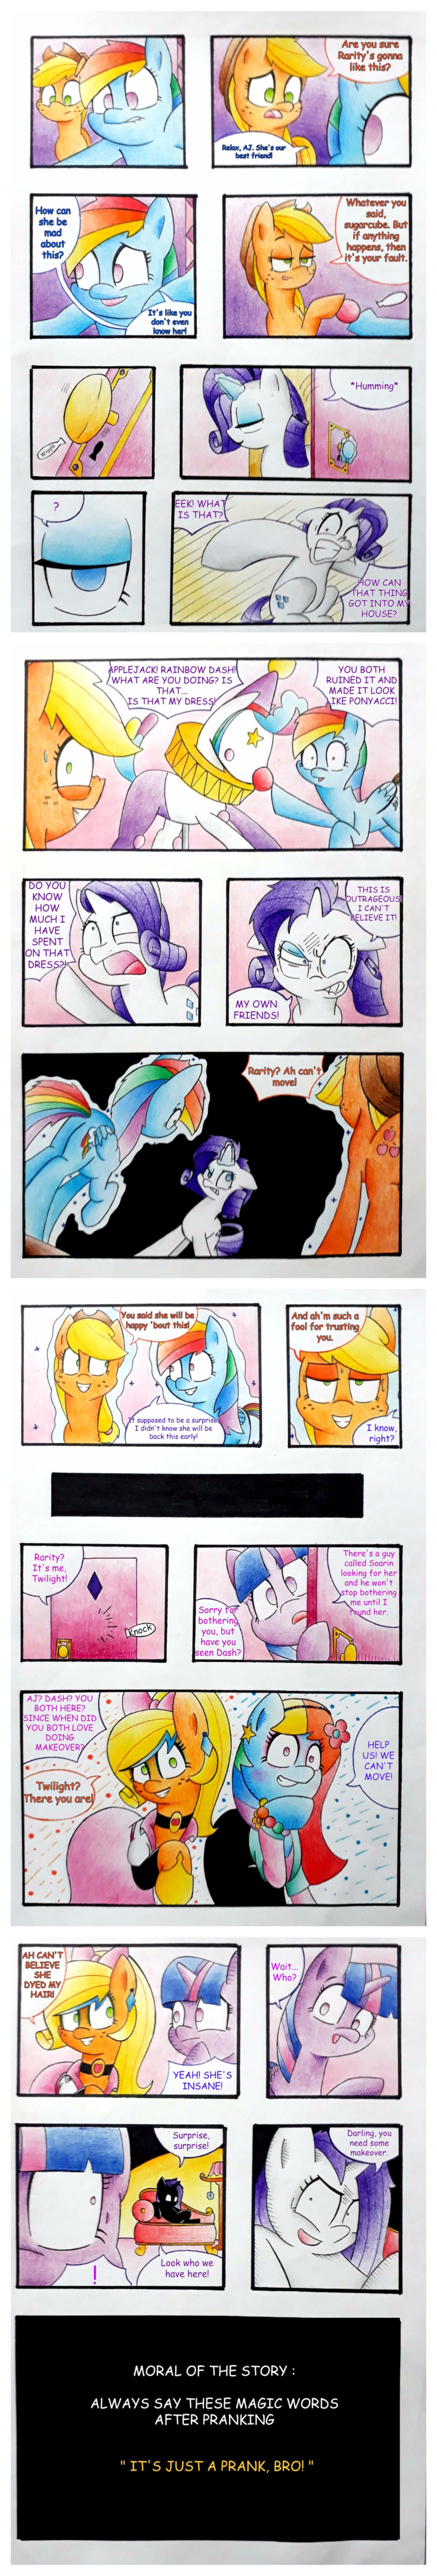 Careful who you prank. .. >posting ponies just a prank bro